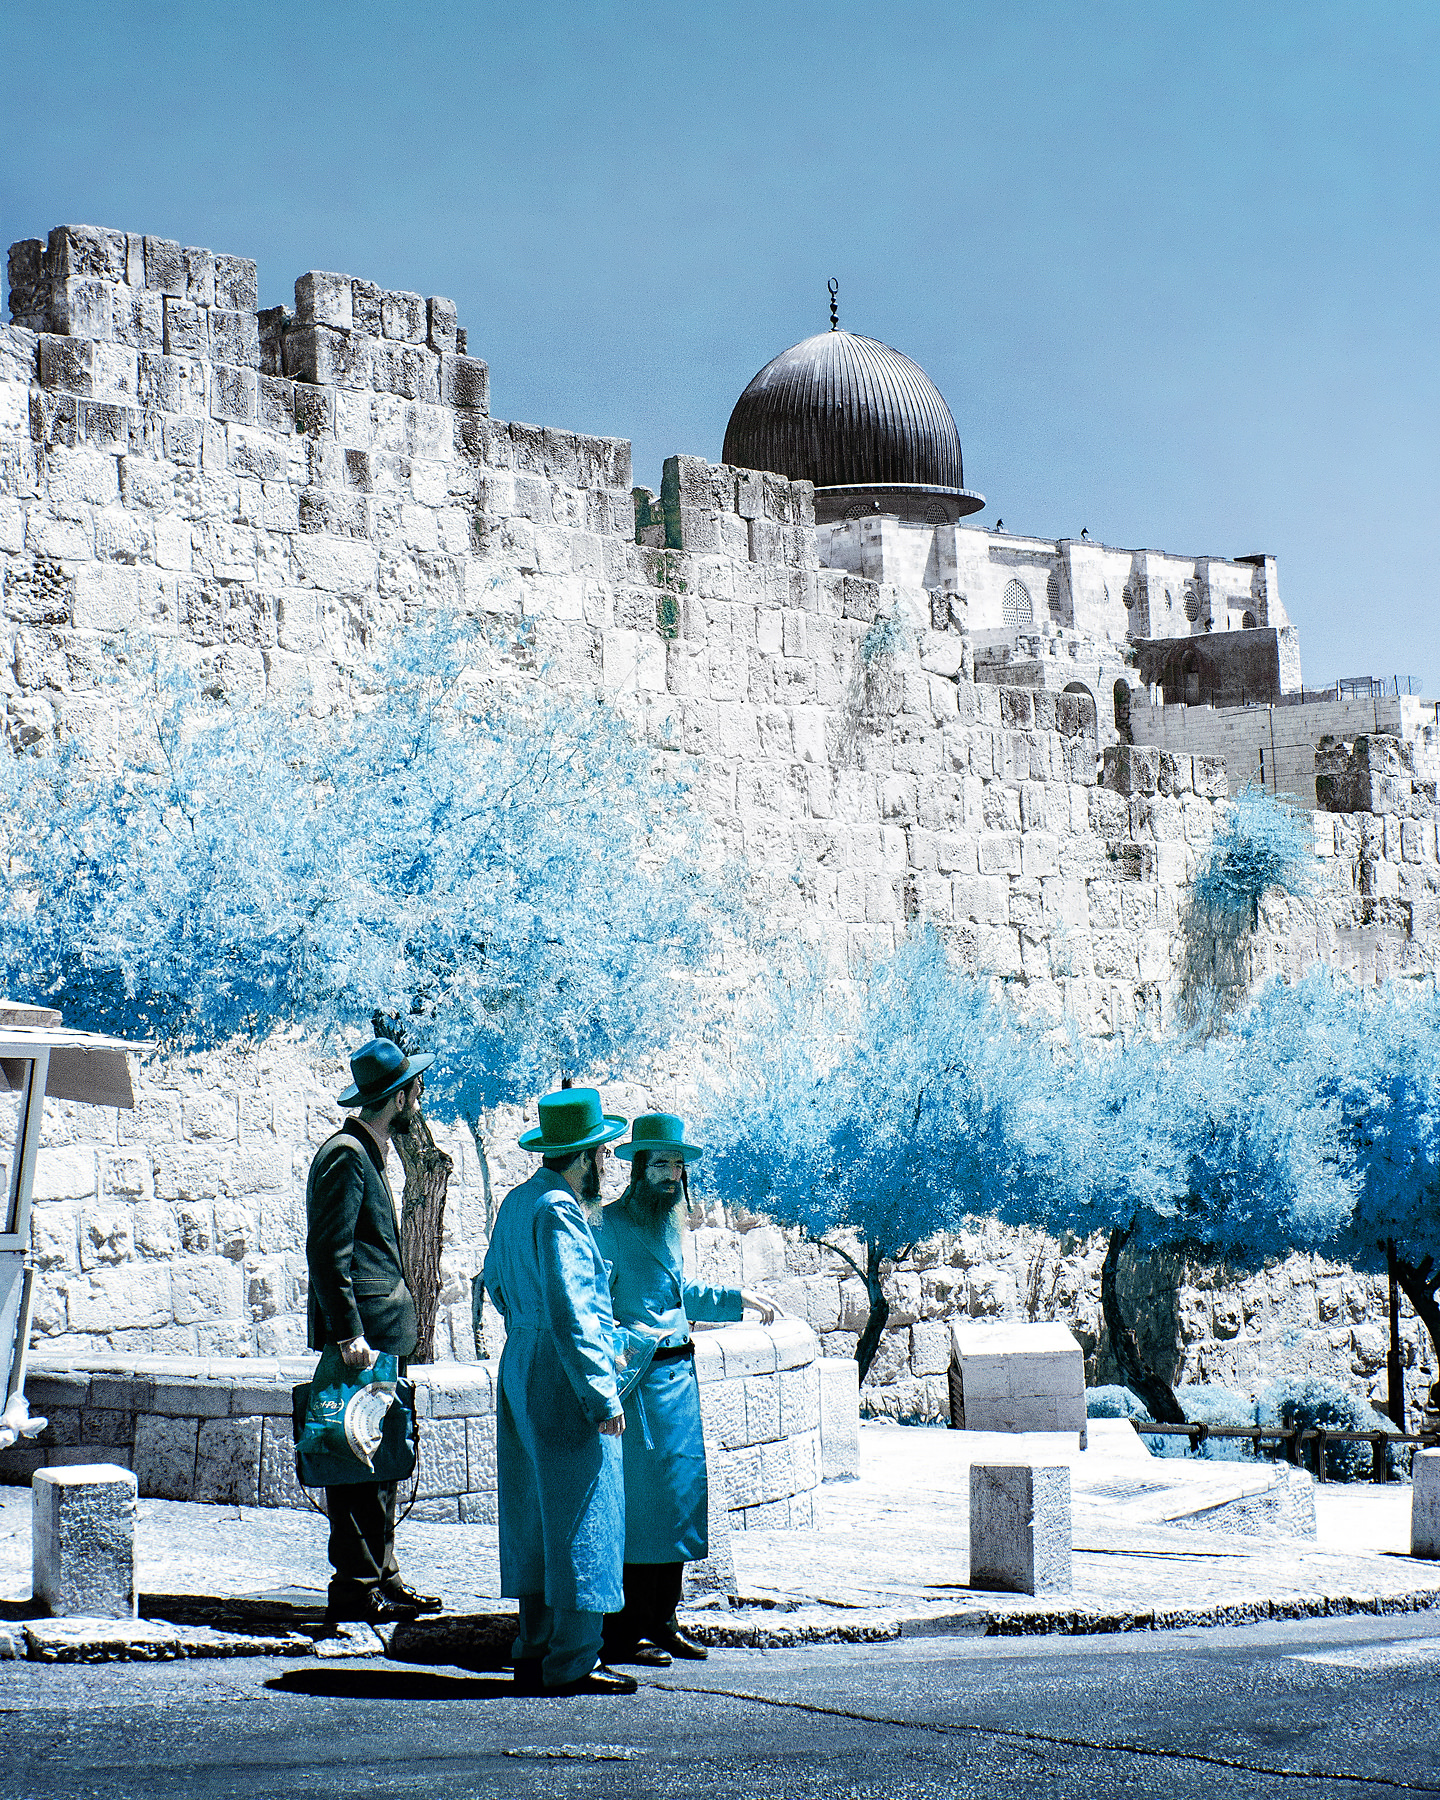 Rabbis in Blue